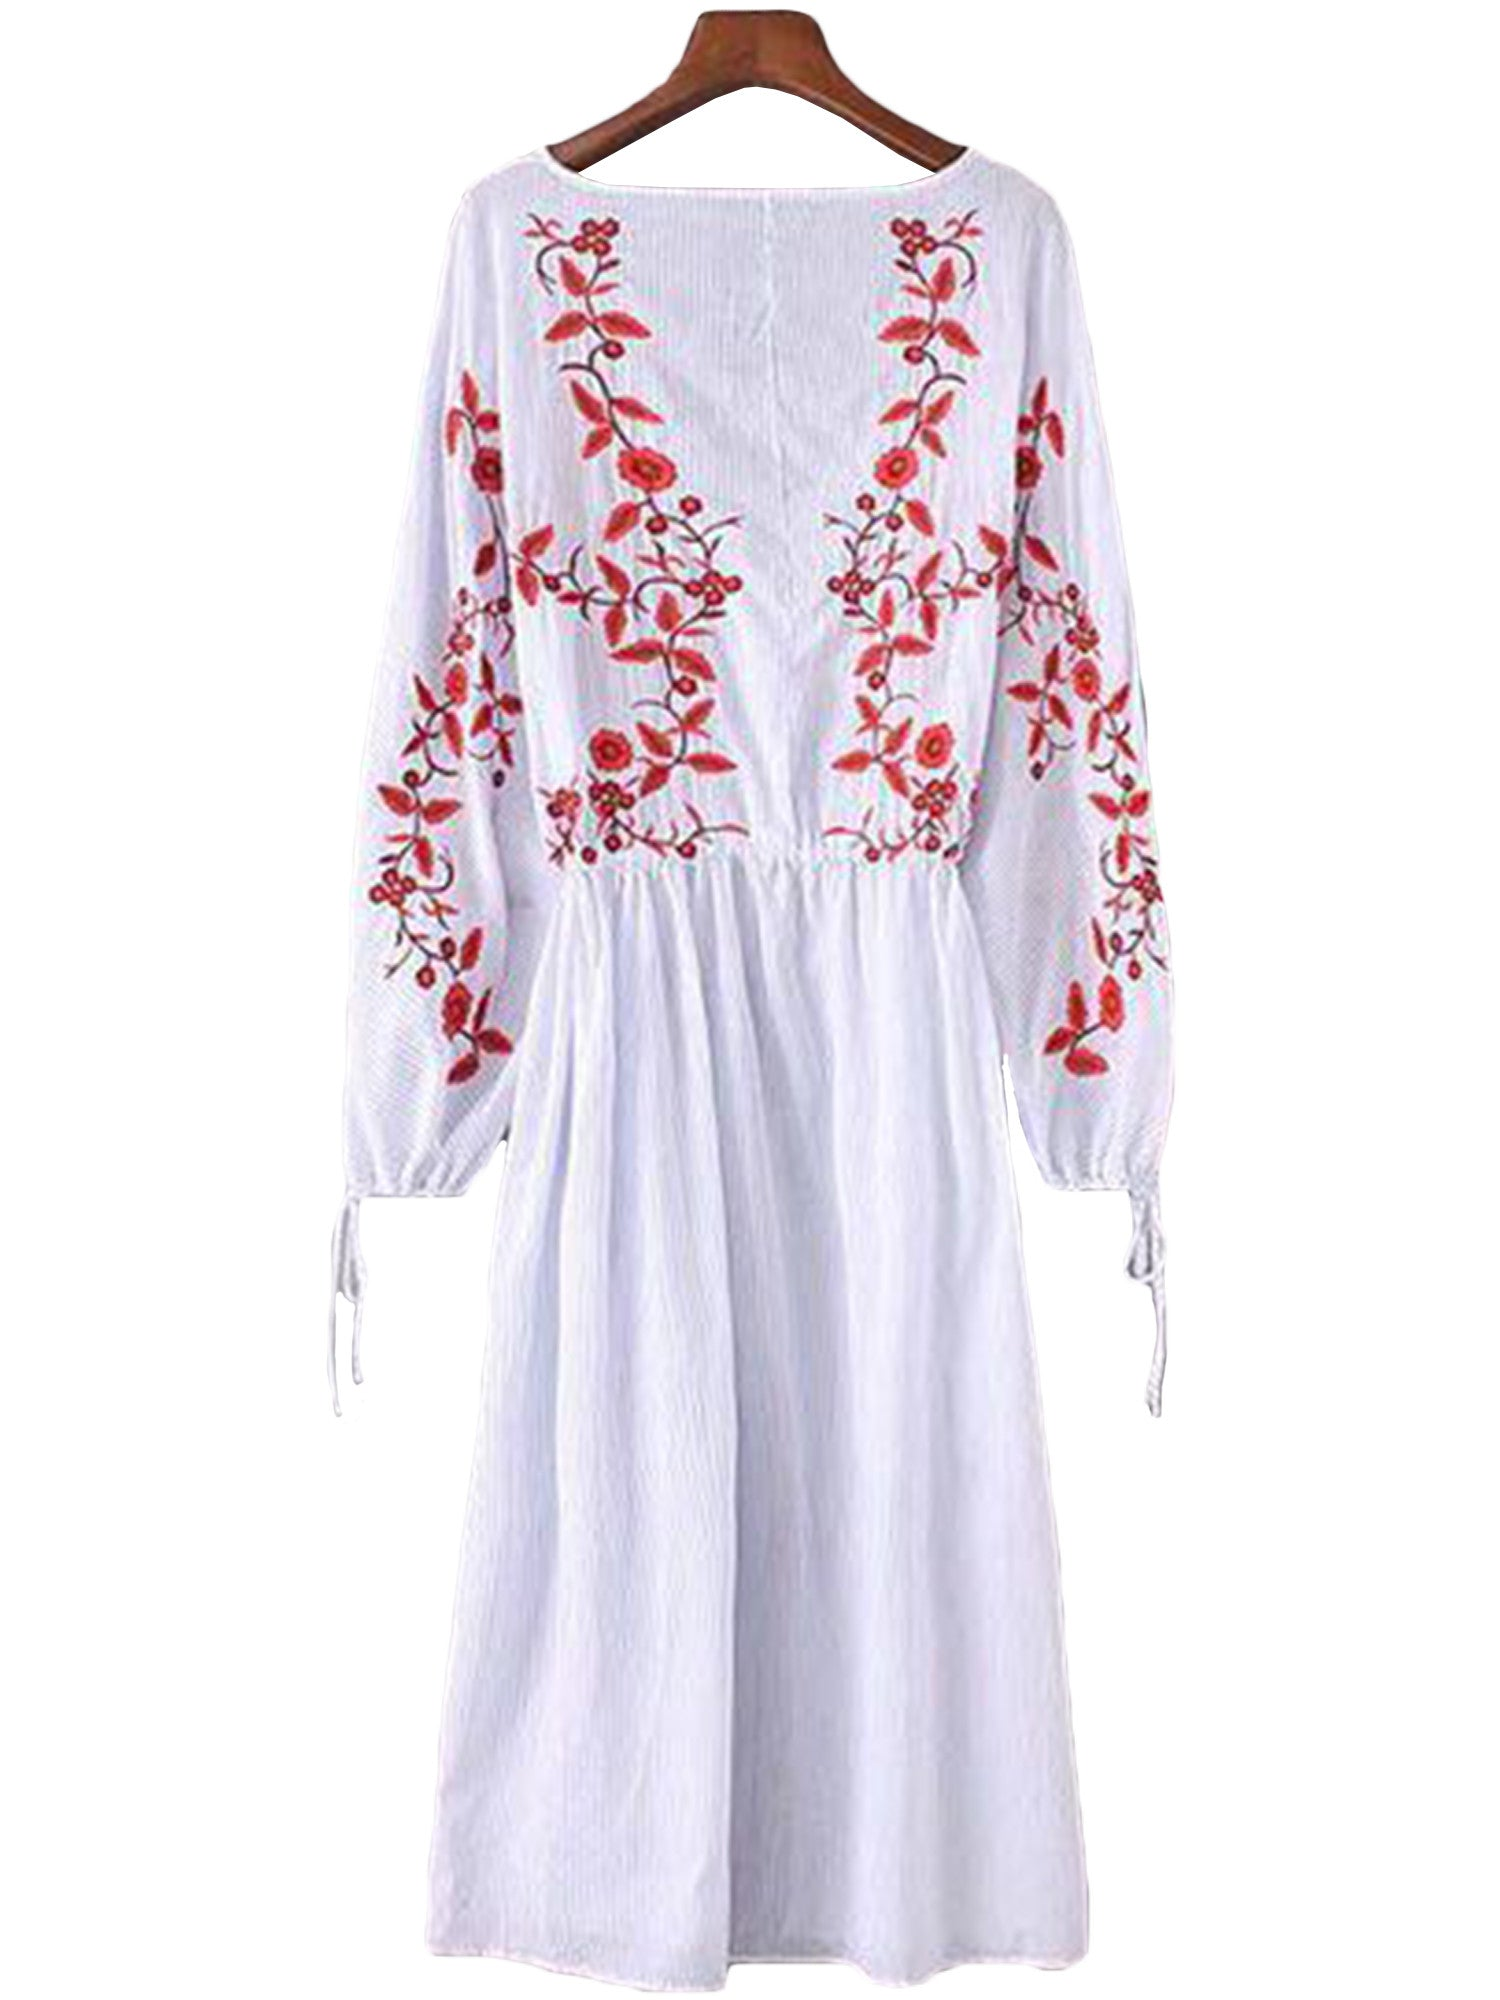 'Joy' V-neck Embroidered Tassels Beach Cover Up Dress